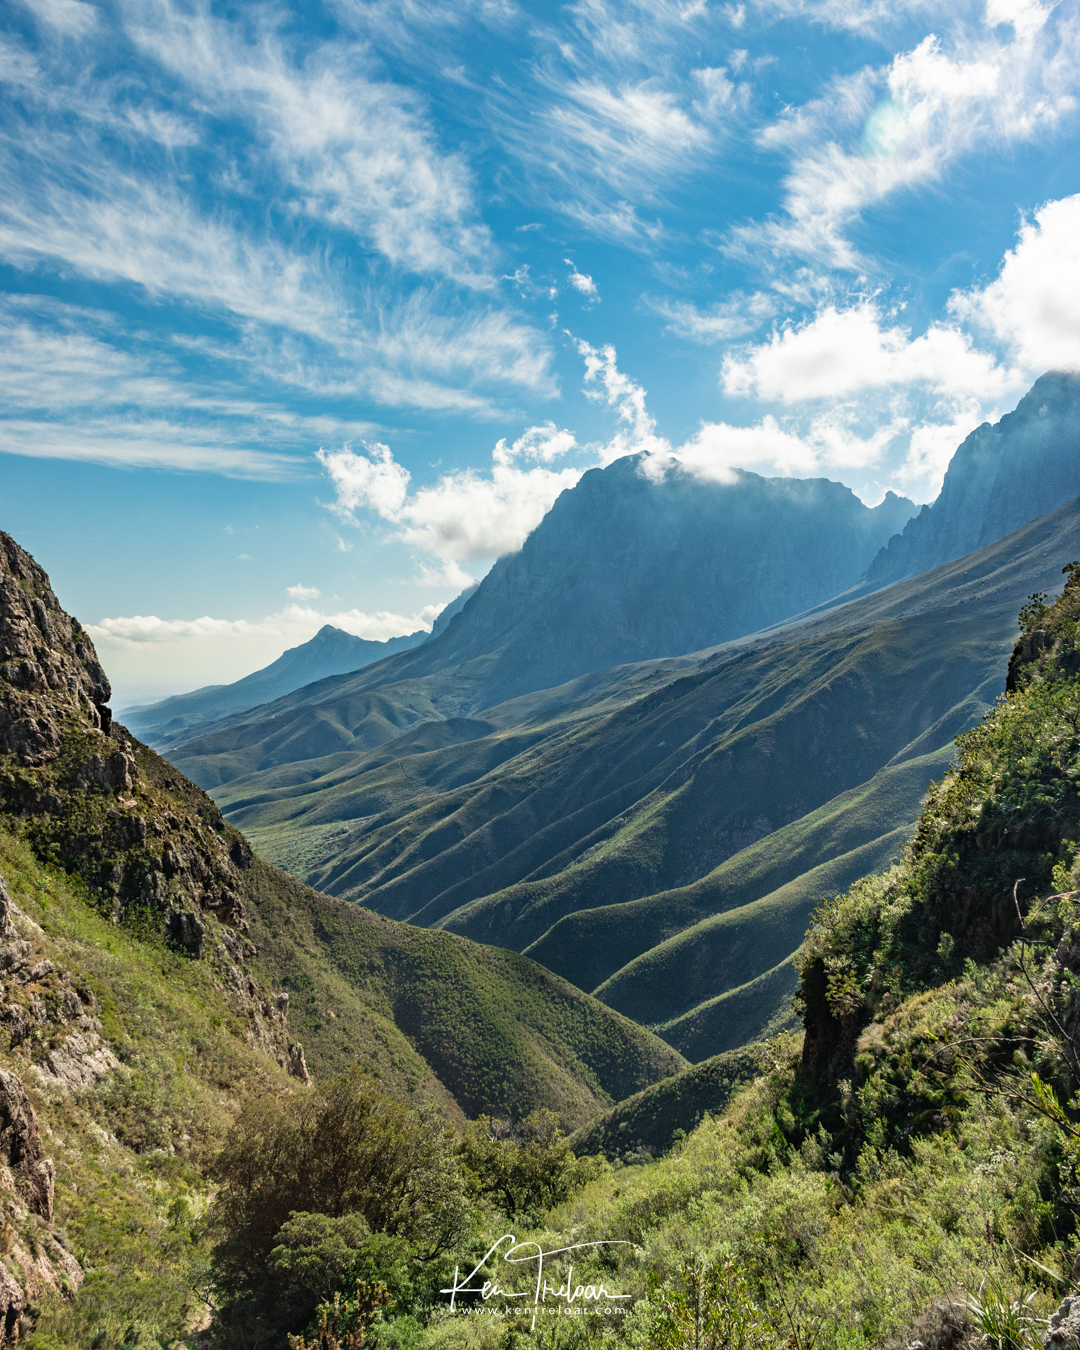 Jonkershoek Hiking Trail, Stellenbosch, South Africa - photo by Ken Treloar Photography 2018 (Low Res)-8.jpg